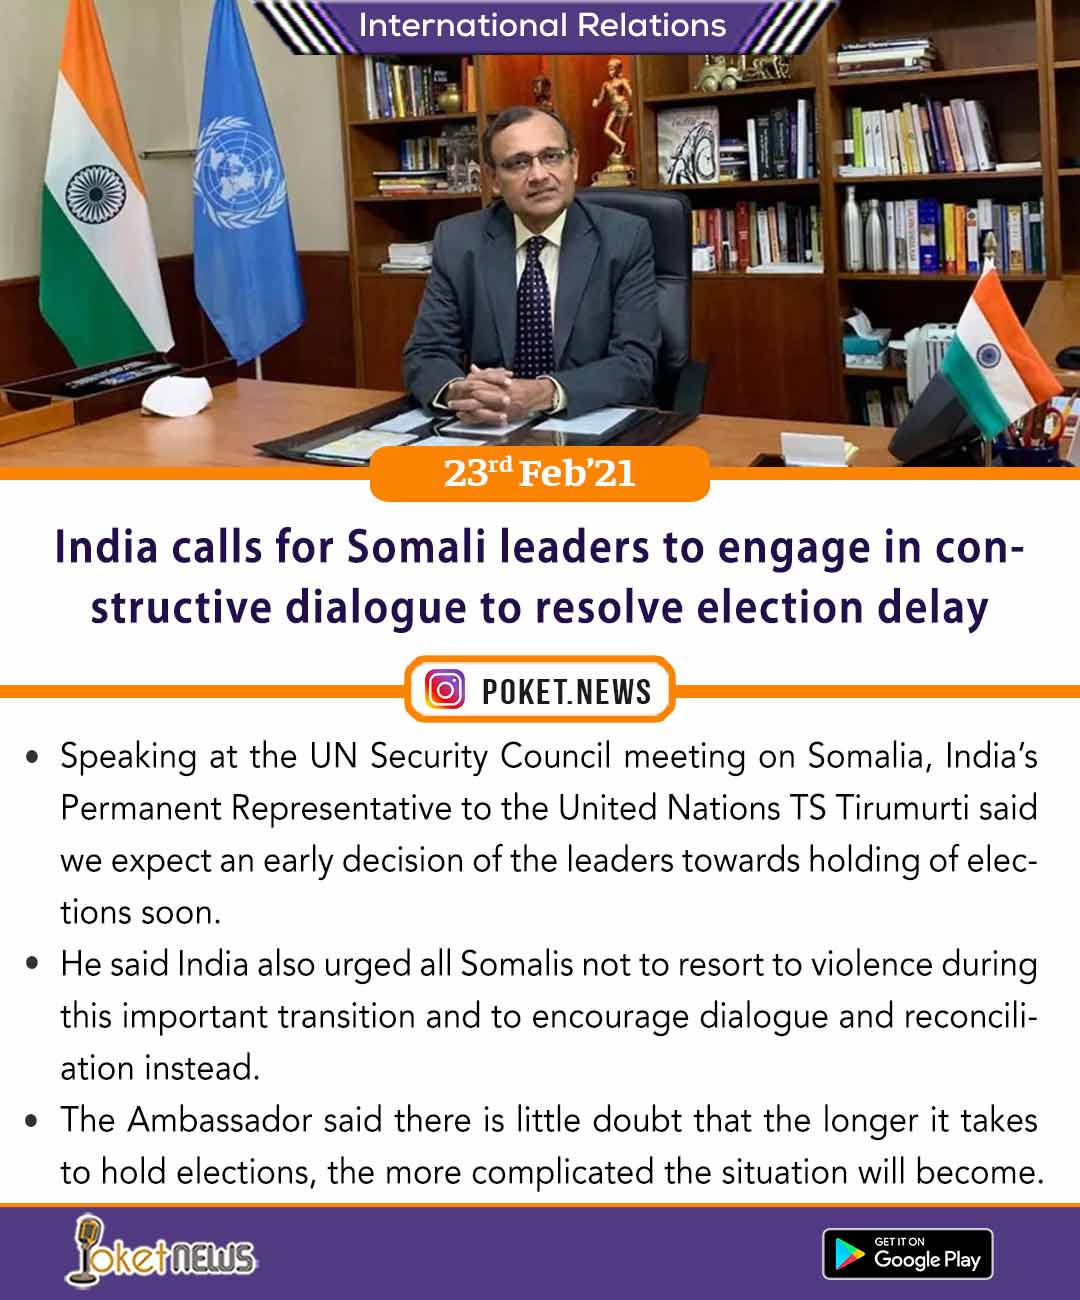 India calls for Somali leaders to engage in constructive dialogue to resolve election delay